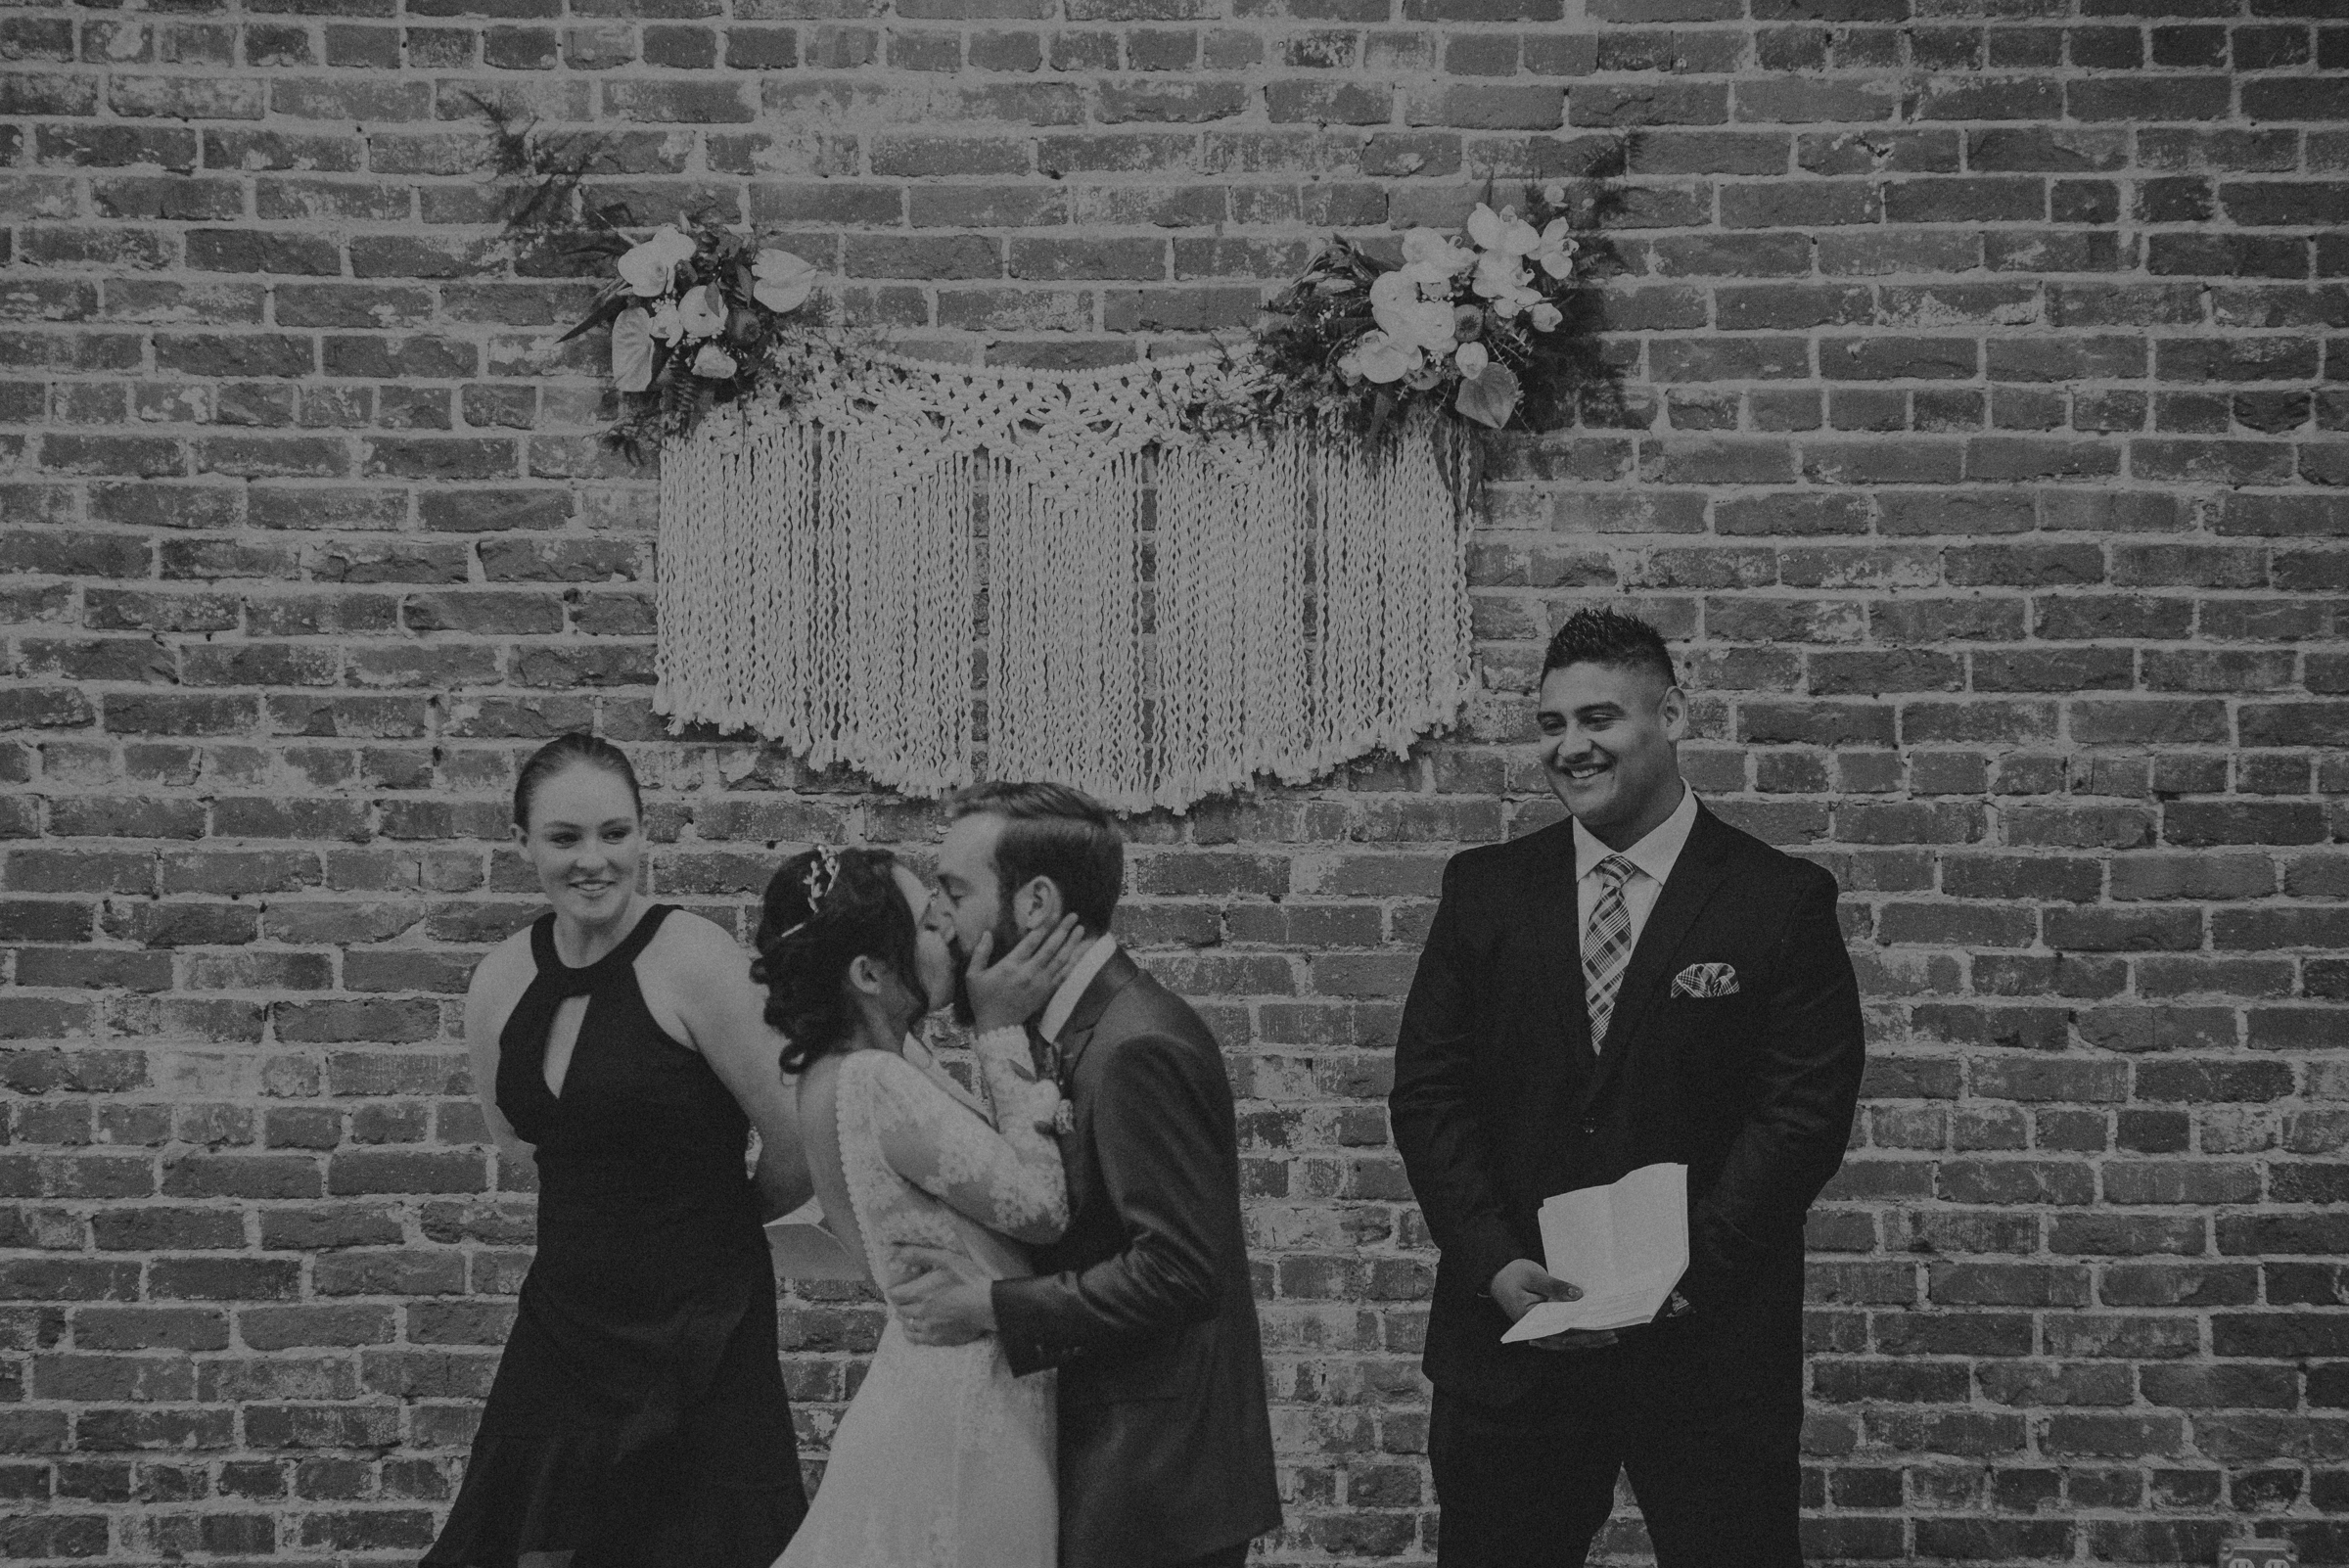 Isaiah + Taylor Photography - The Unique Space Wedding, Los Angeles Wedding Photography 118.jpg